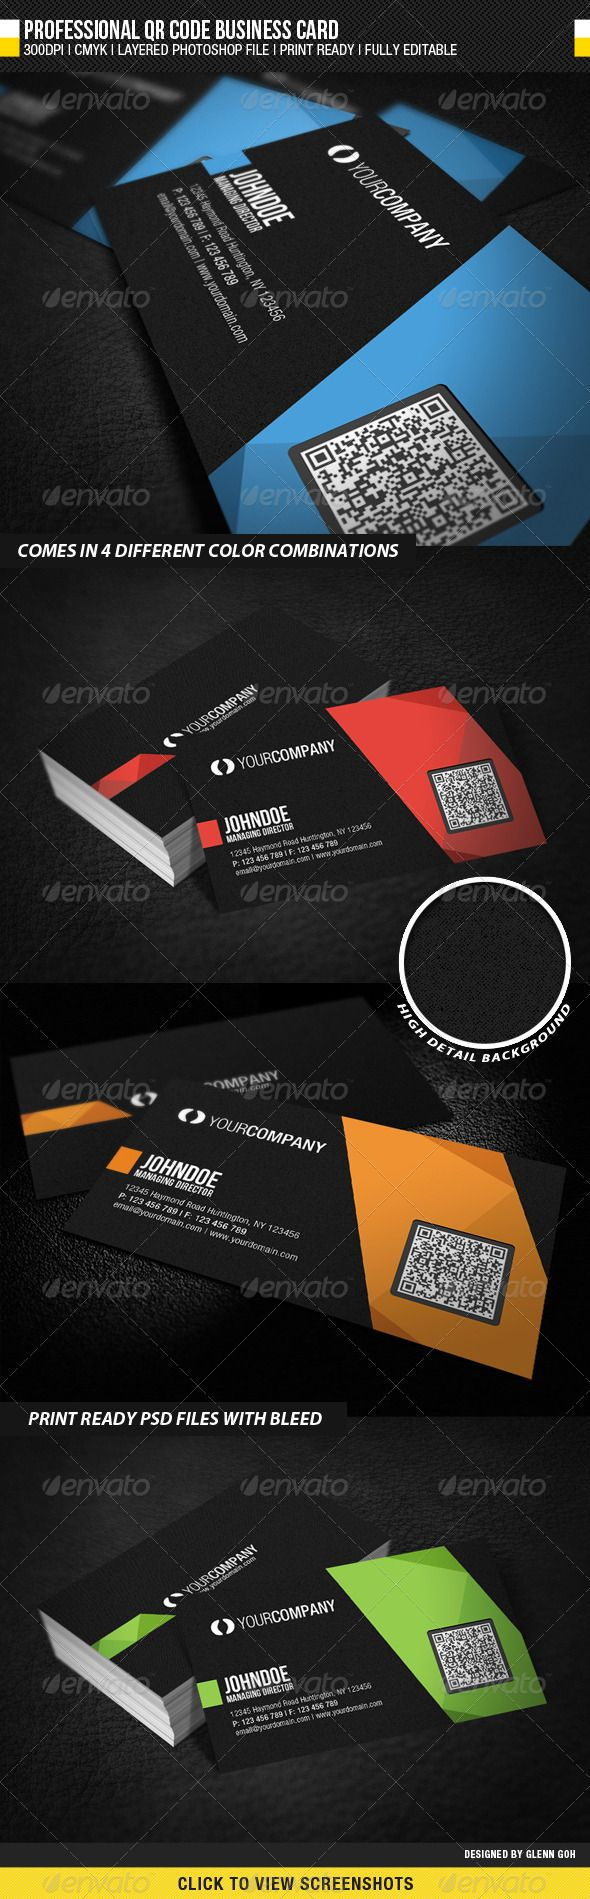 Click business cards oukasfo american express credit cards rewards travel and reheart Images